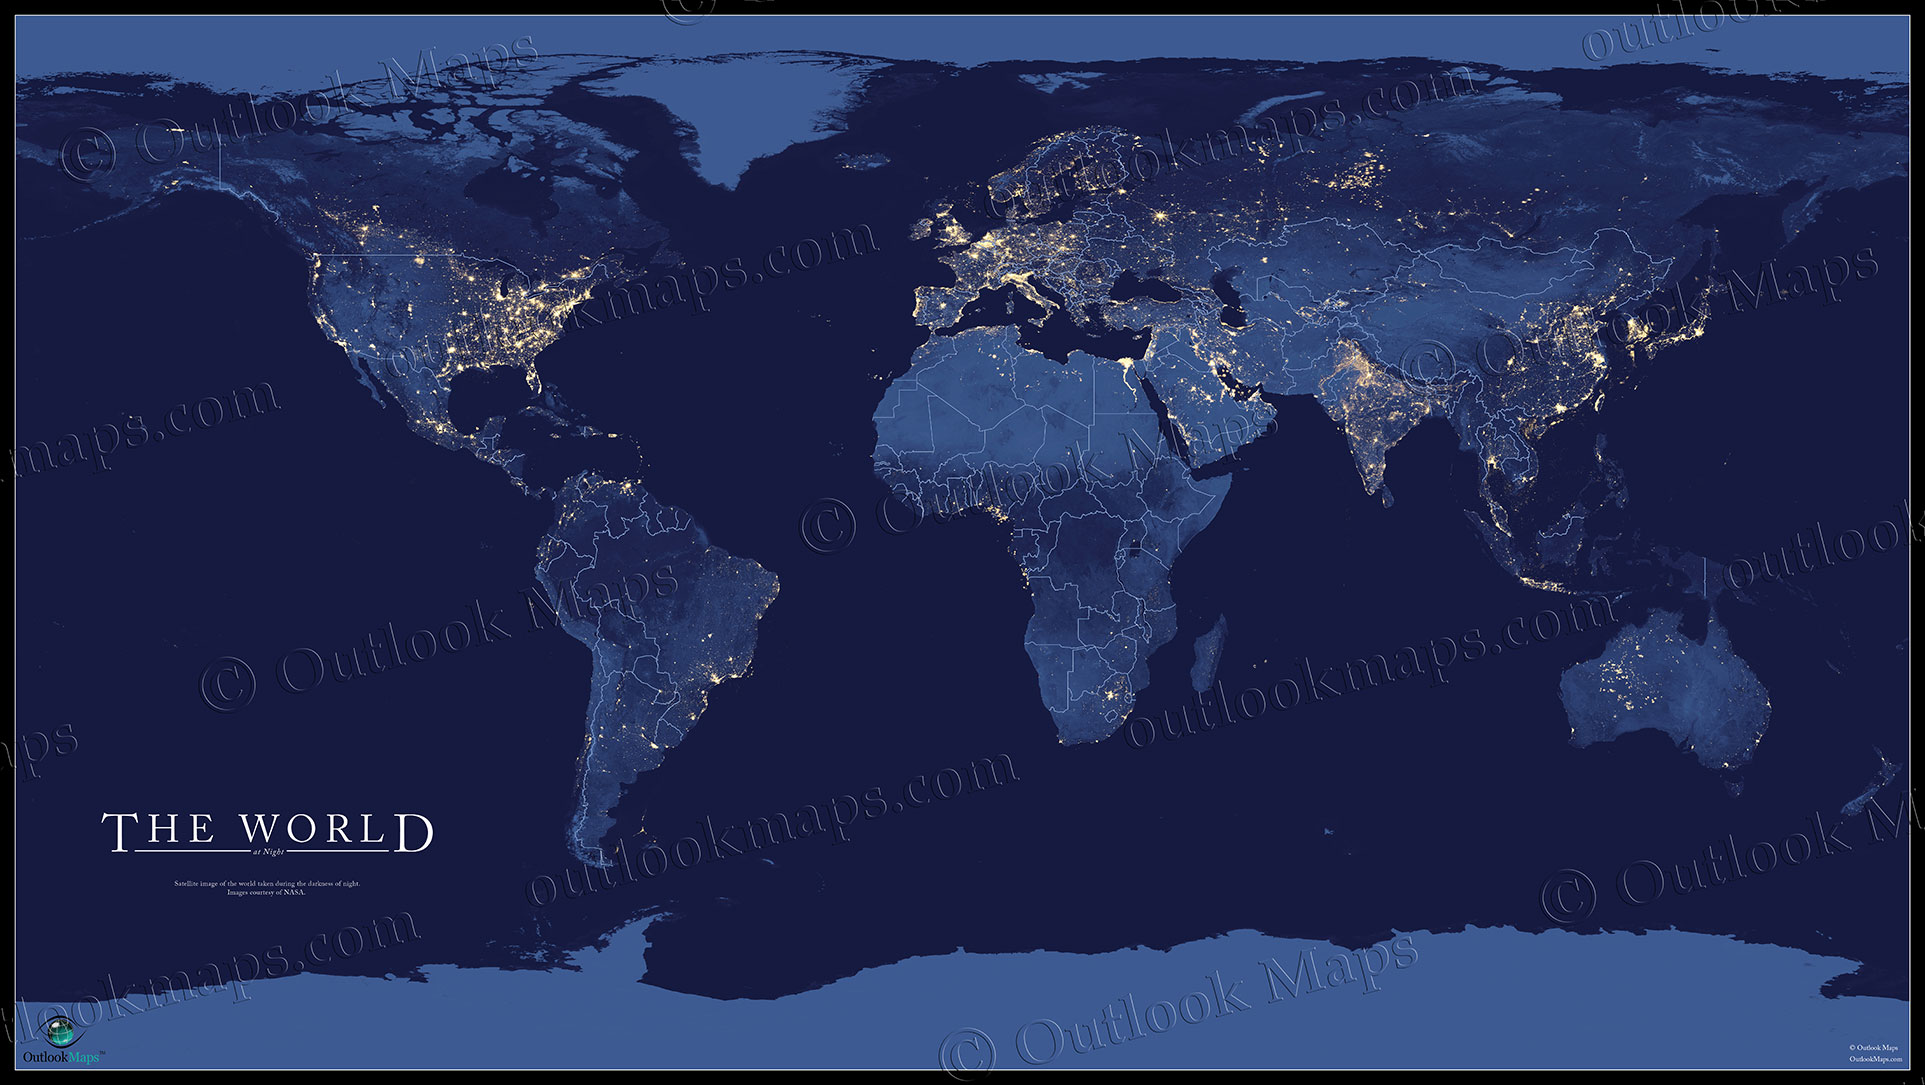 world wall map at darkness showing city lights at night